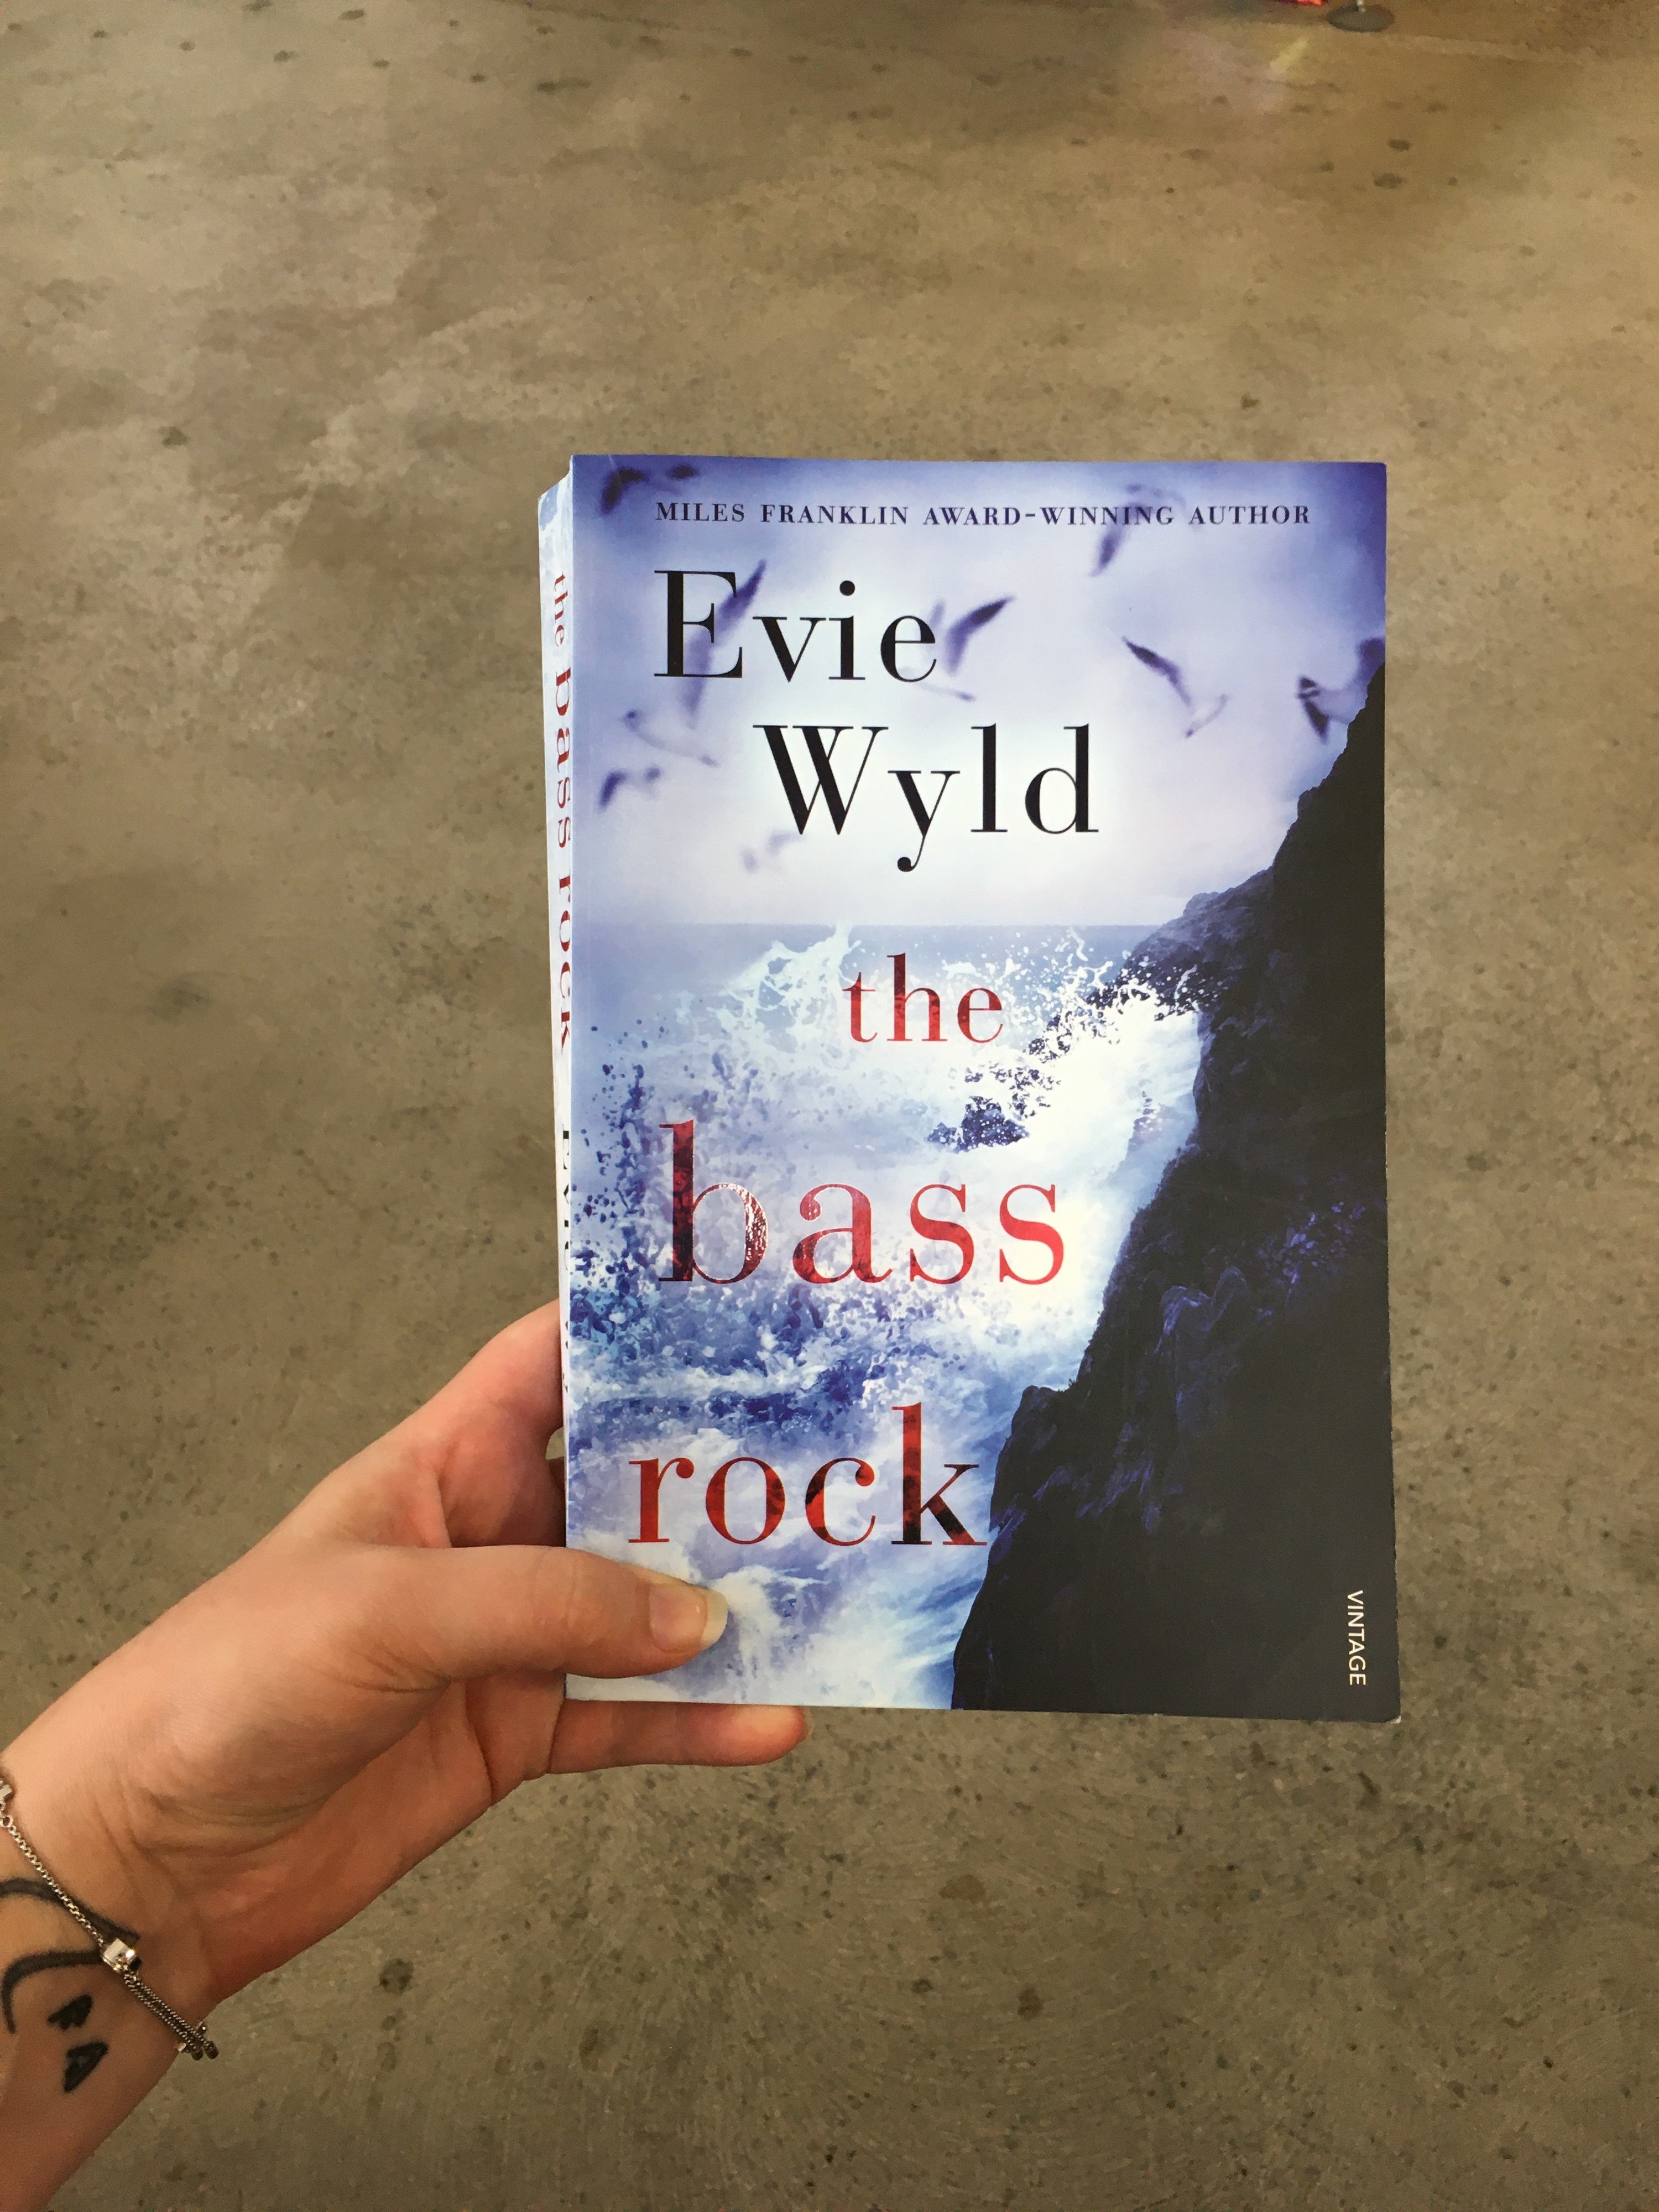 Hand holding a book that shows waves crashing onto a rock